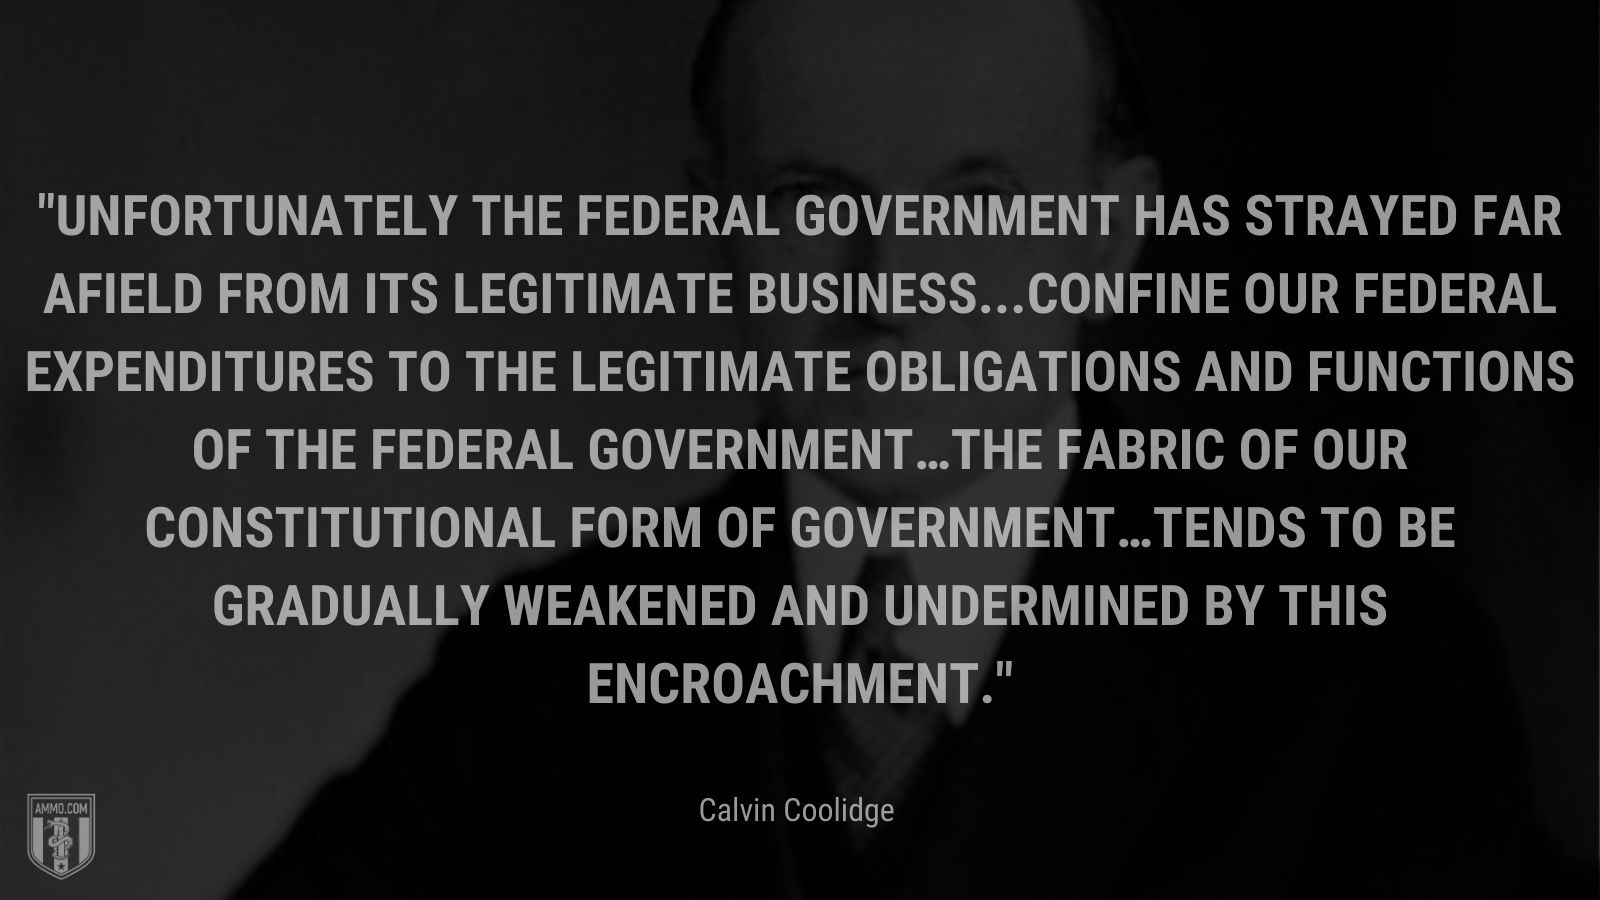 """""""Unfortunately the Federal Government has strayed far afield from its legitimate business...confine our Federal expenditures to the legitimate obligations and functions of the Federal Government…the fabric of our constitutional form of government…tends to be gradually weakened and undermined by this encroachment."""" - Calvin Coolidge"""